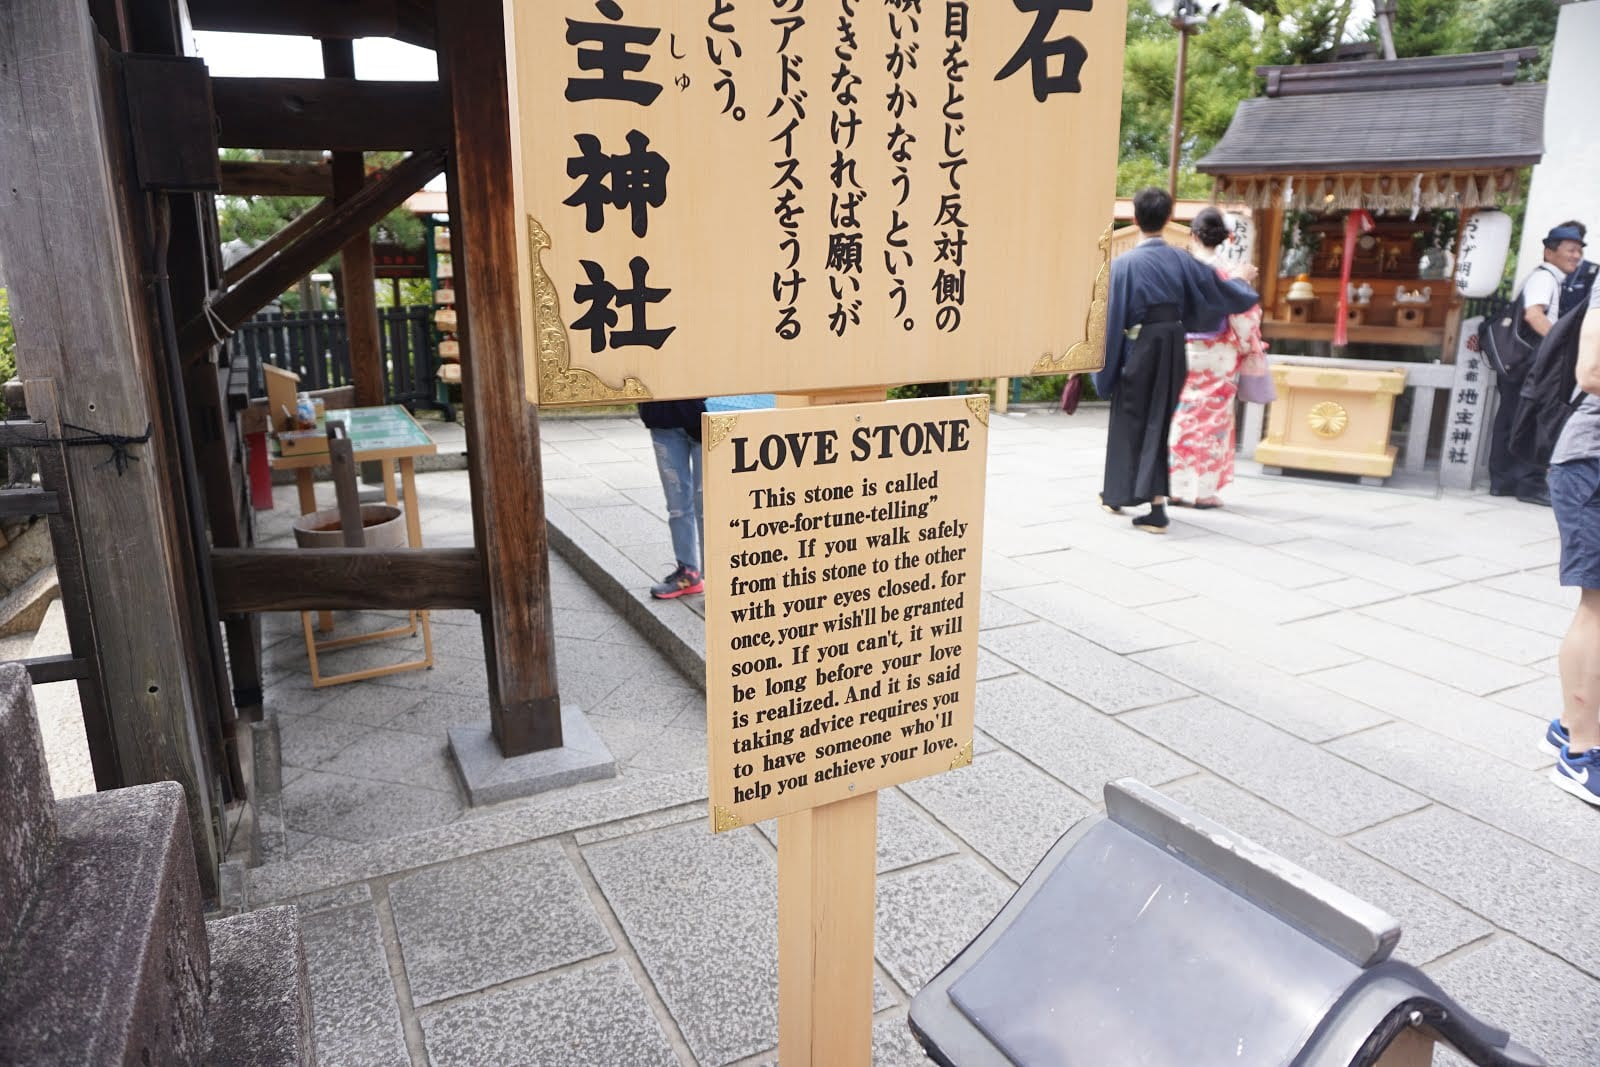 Love Stone, Jishu Shrine, Kyoto